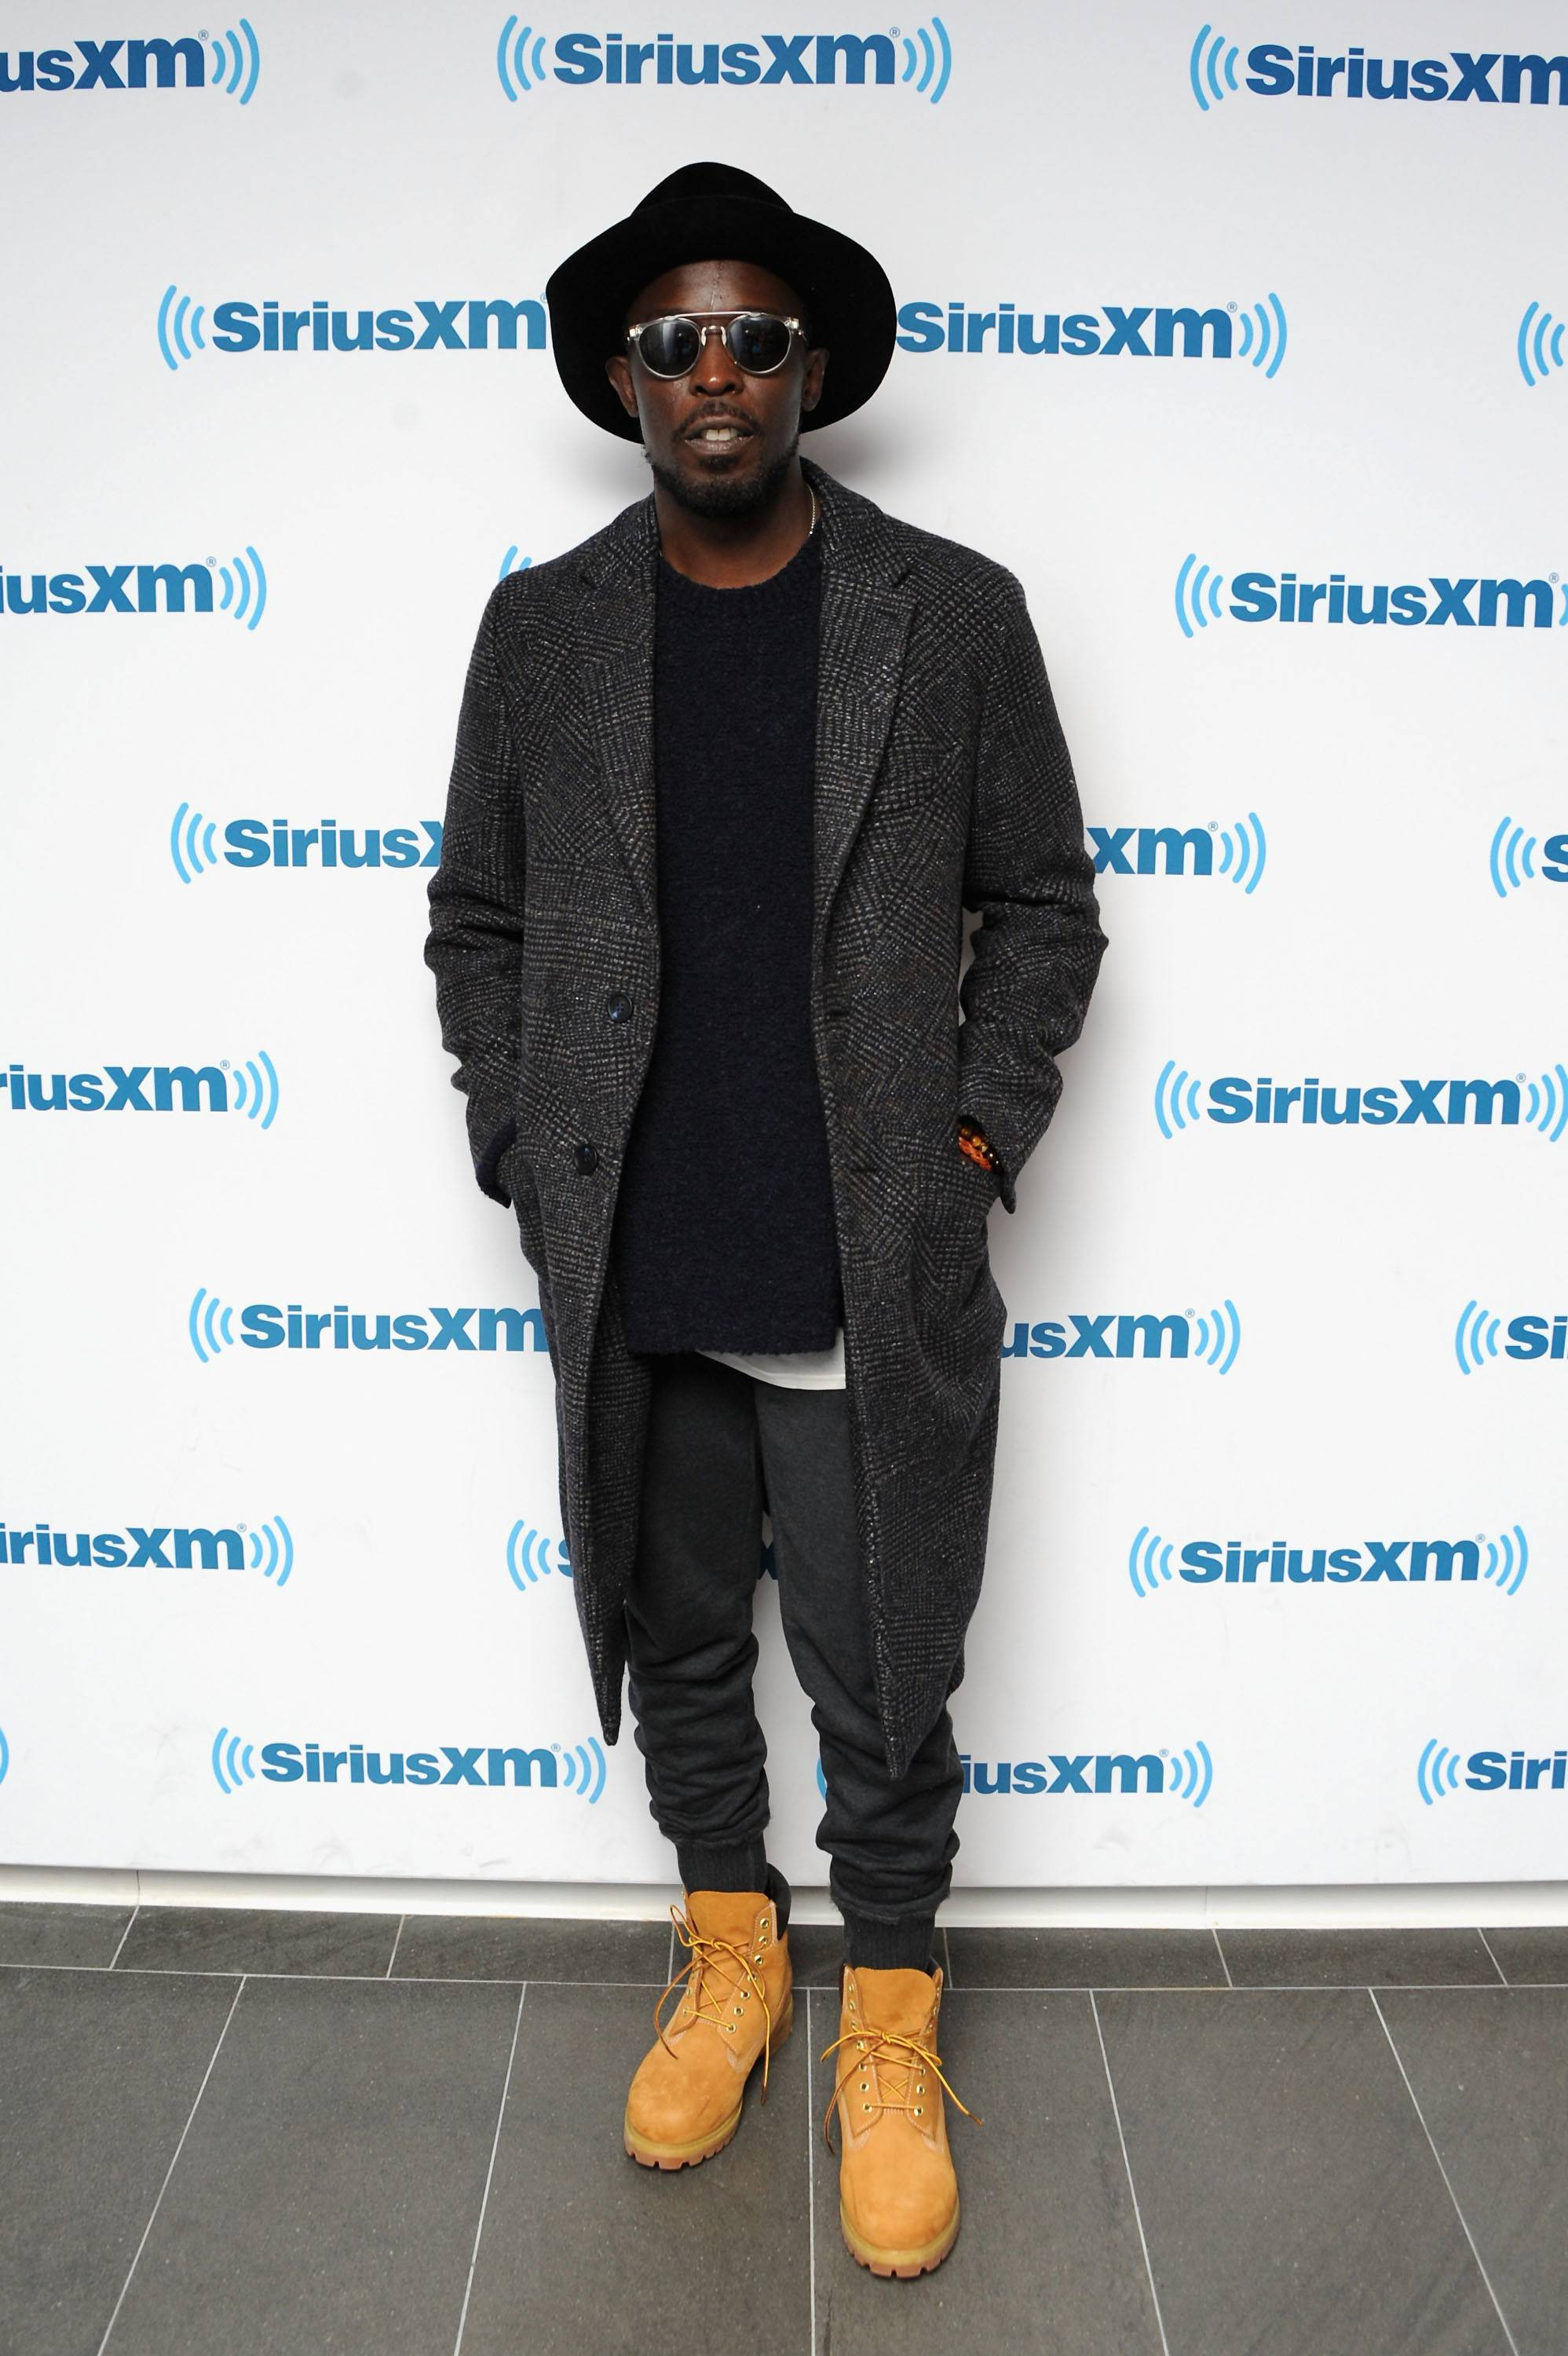 Michael K Williams - October 15, 2014 - Best known for his work on The Wire and Boardwalk Empire, Michael K. Williams stars in the dramatic thriller Kill the Messenger (based on the story of journalist Gary Webb). Hear him talk about it. Watch a clip now!  (Photo: Andrew Toth/Getty Images)